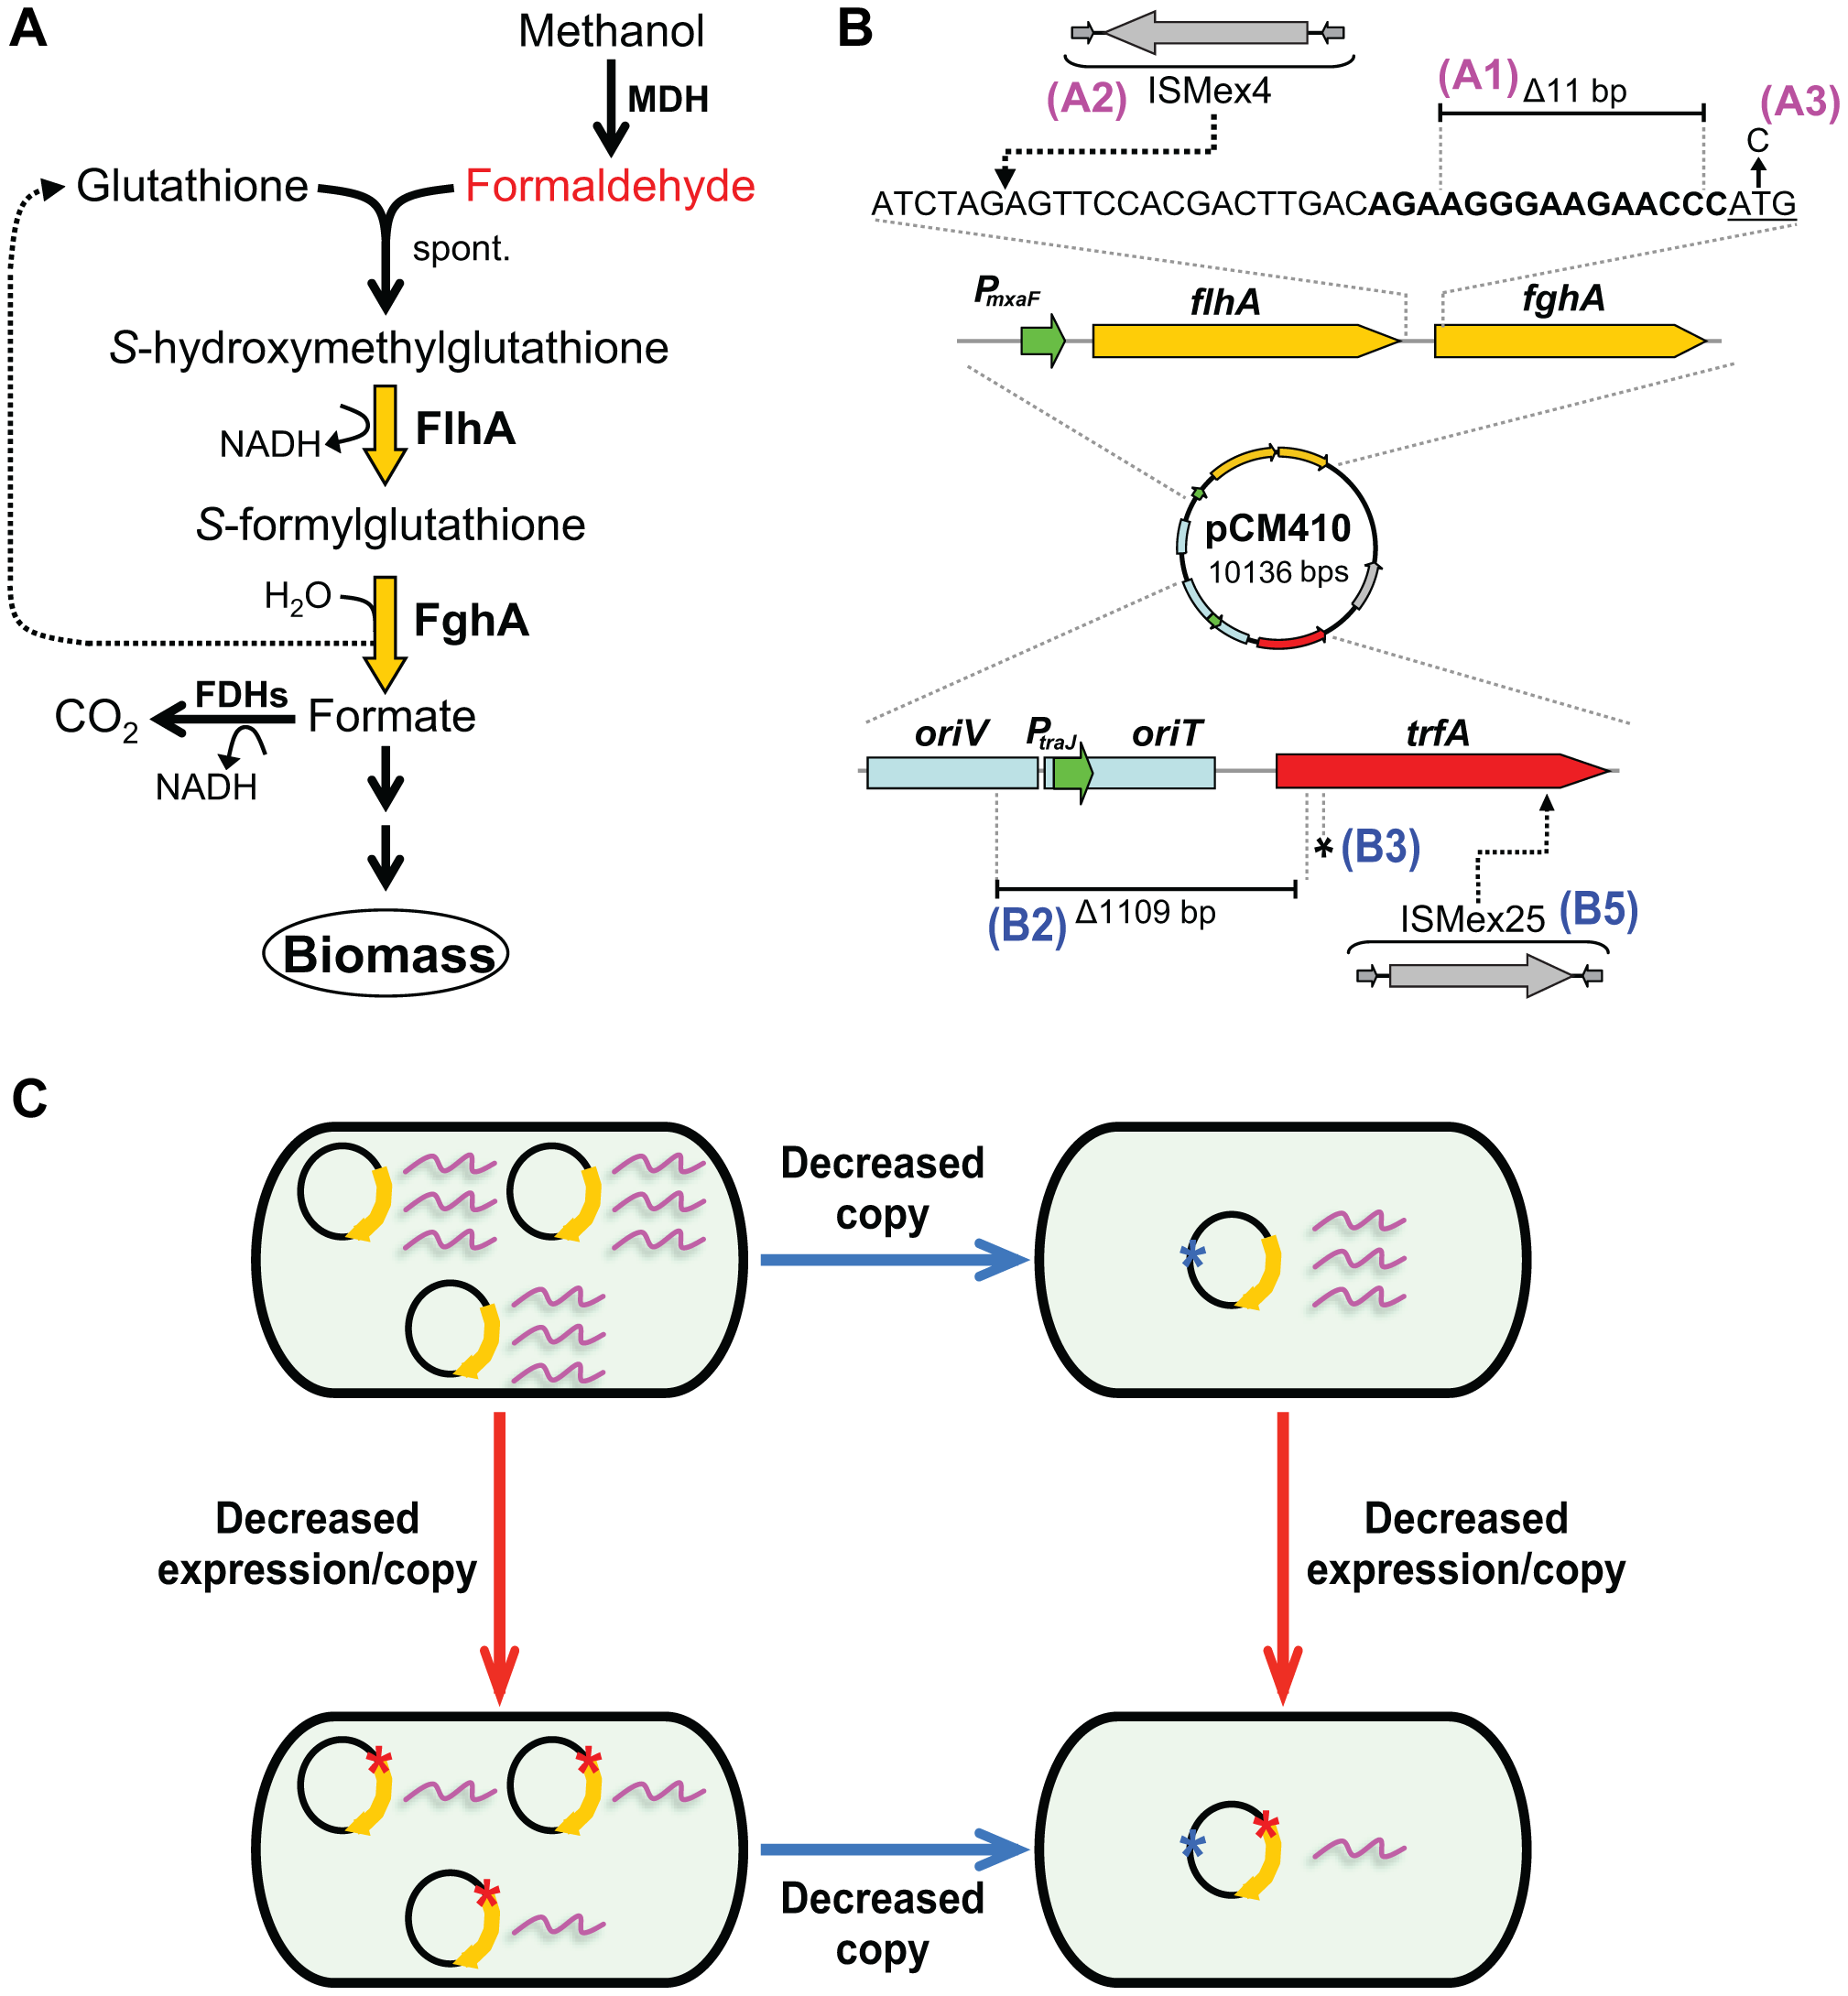 Adaptive mutations that optimized the expression of the GSH-linked pathway.